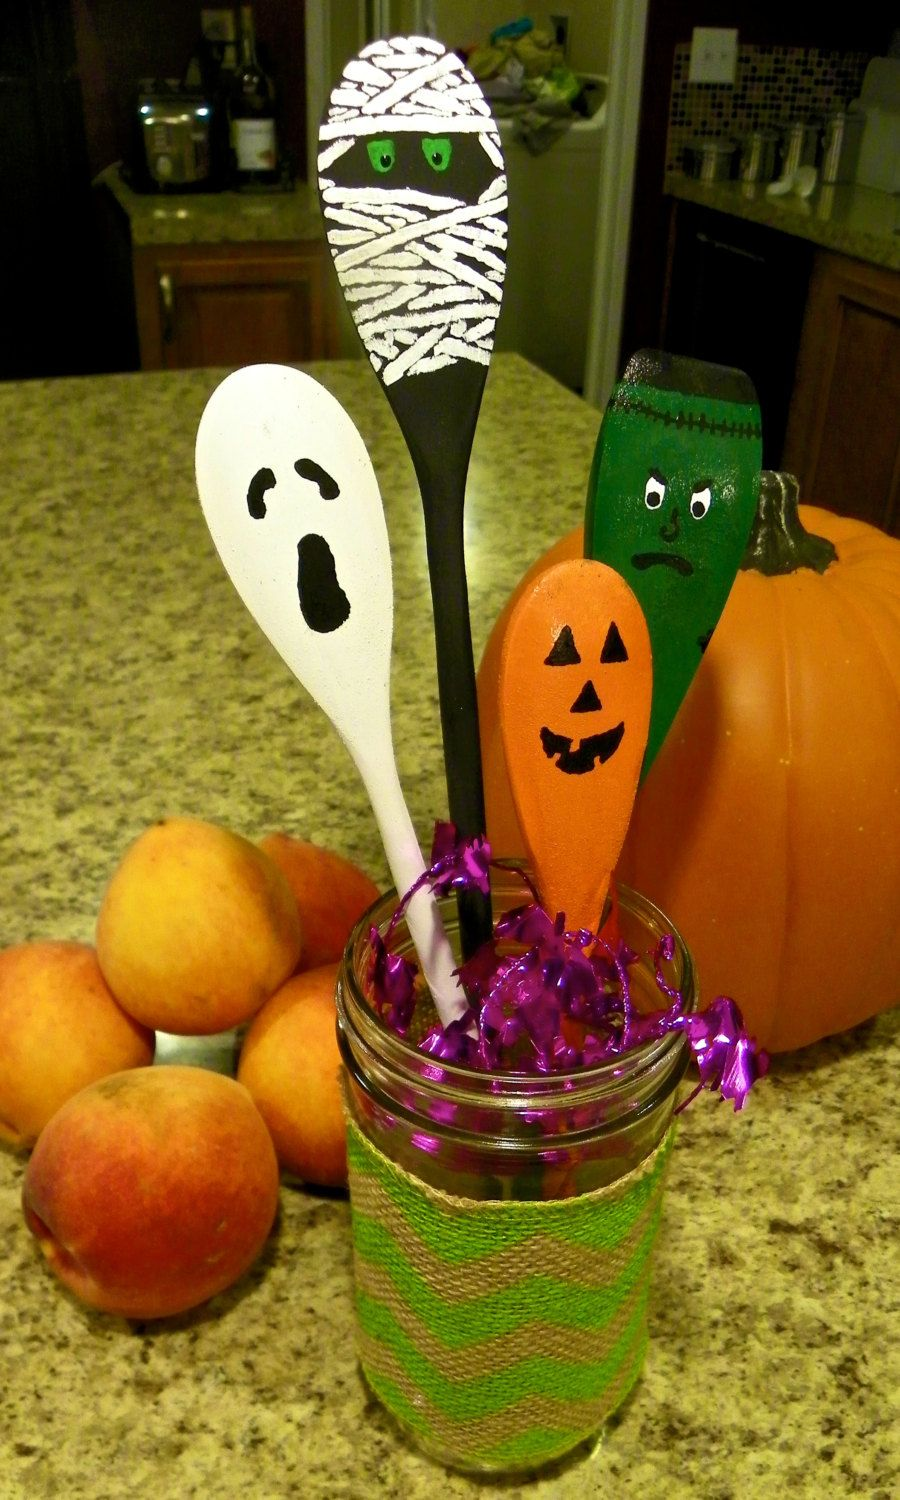 Halloween glass ornaments - Halloween Spoons Hand Painted Wooden Decorations Halloween Gift Cute Kitchen Ornament Jack